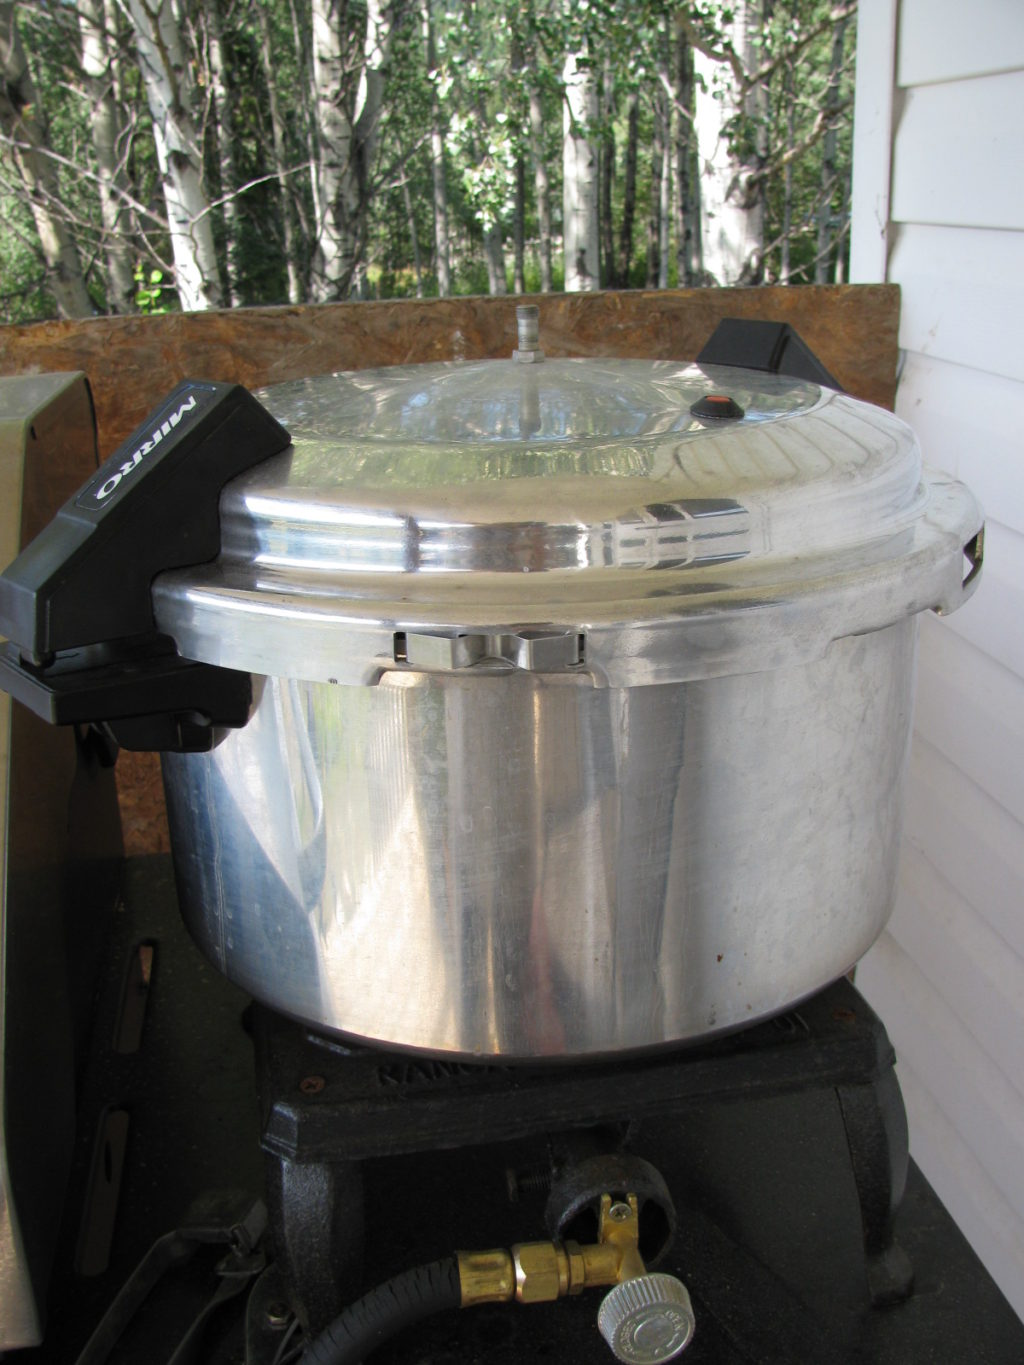 pressure canner, canning, preserving food